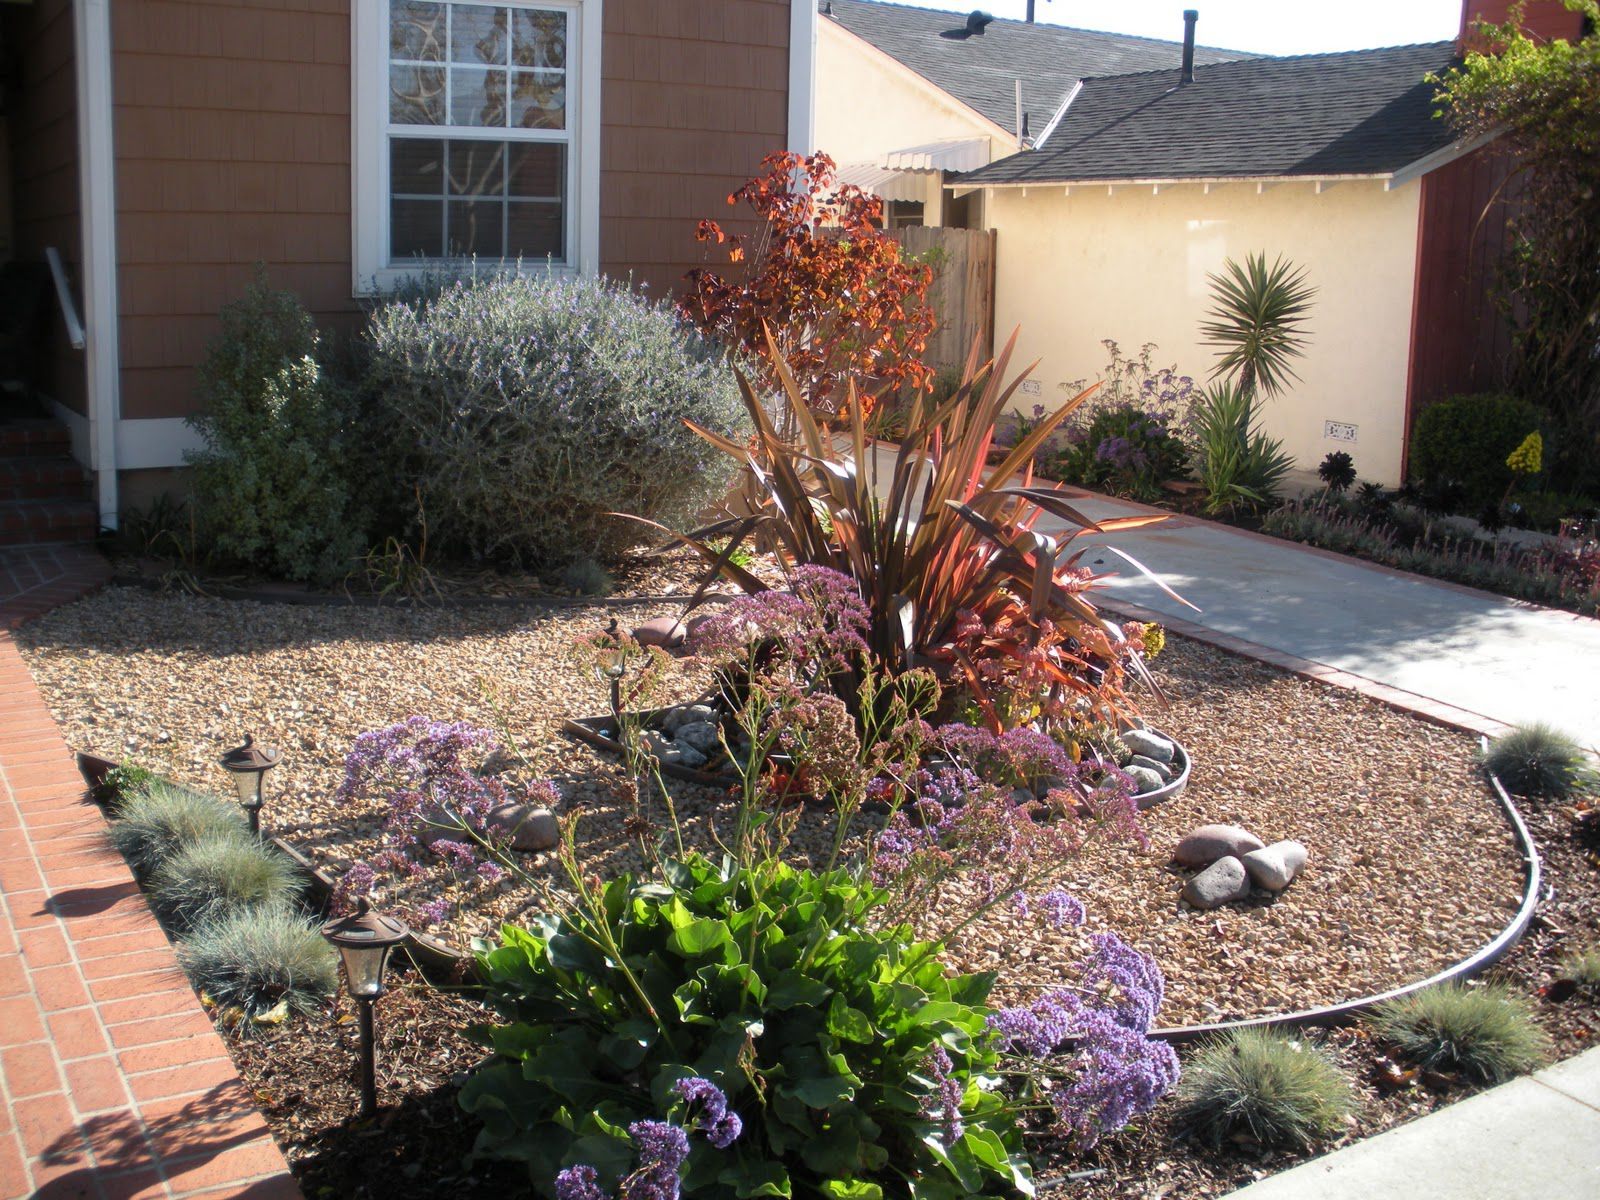 Mesmerizing sacramento backyard design images inspirations dievoon - Landscaping for small spaces gallery ...